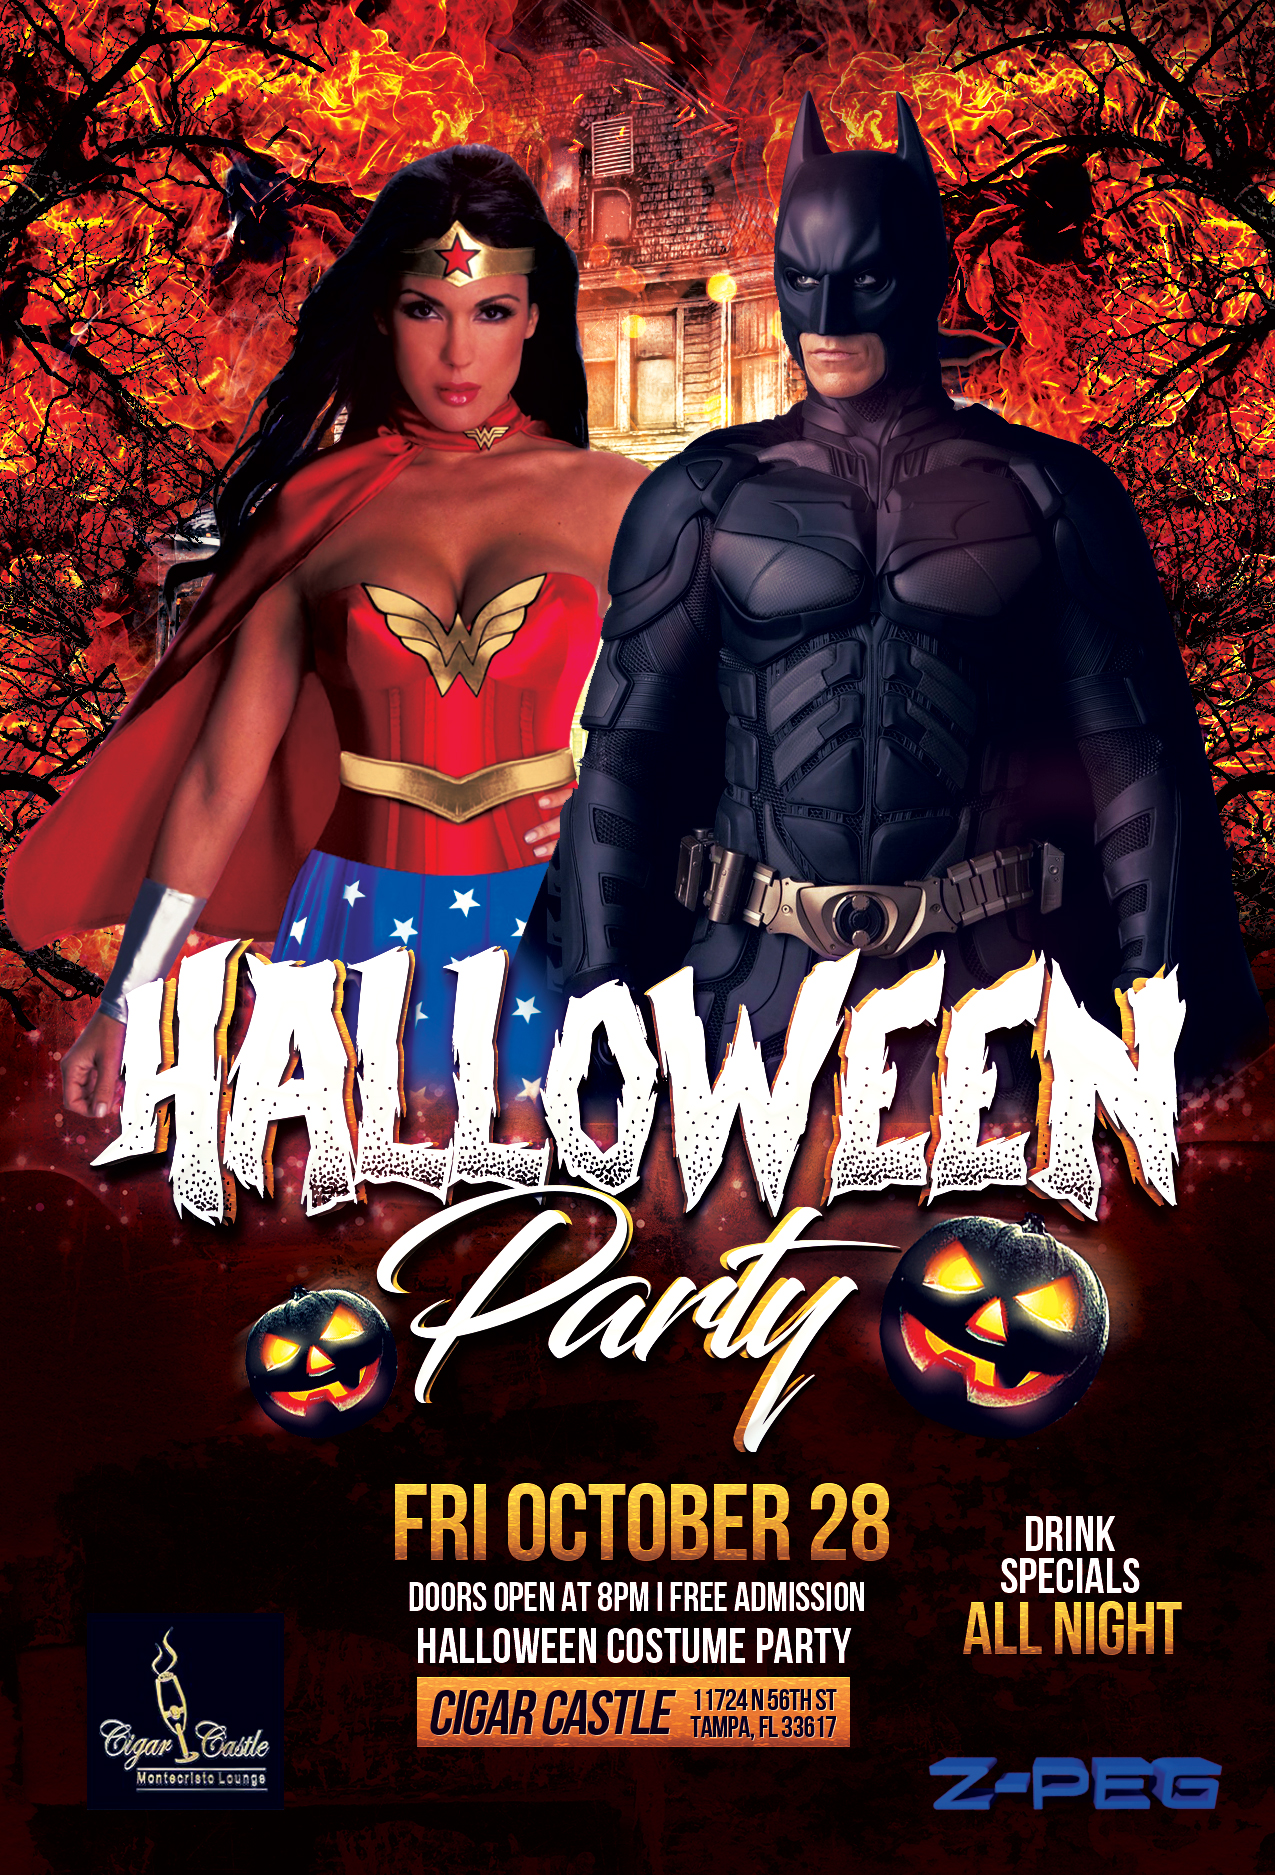 Cigar Castle Halloween Party Flyer |